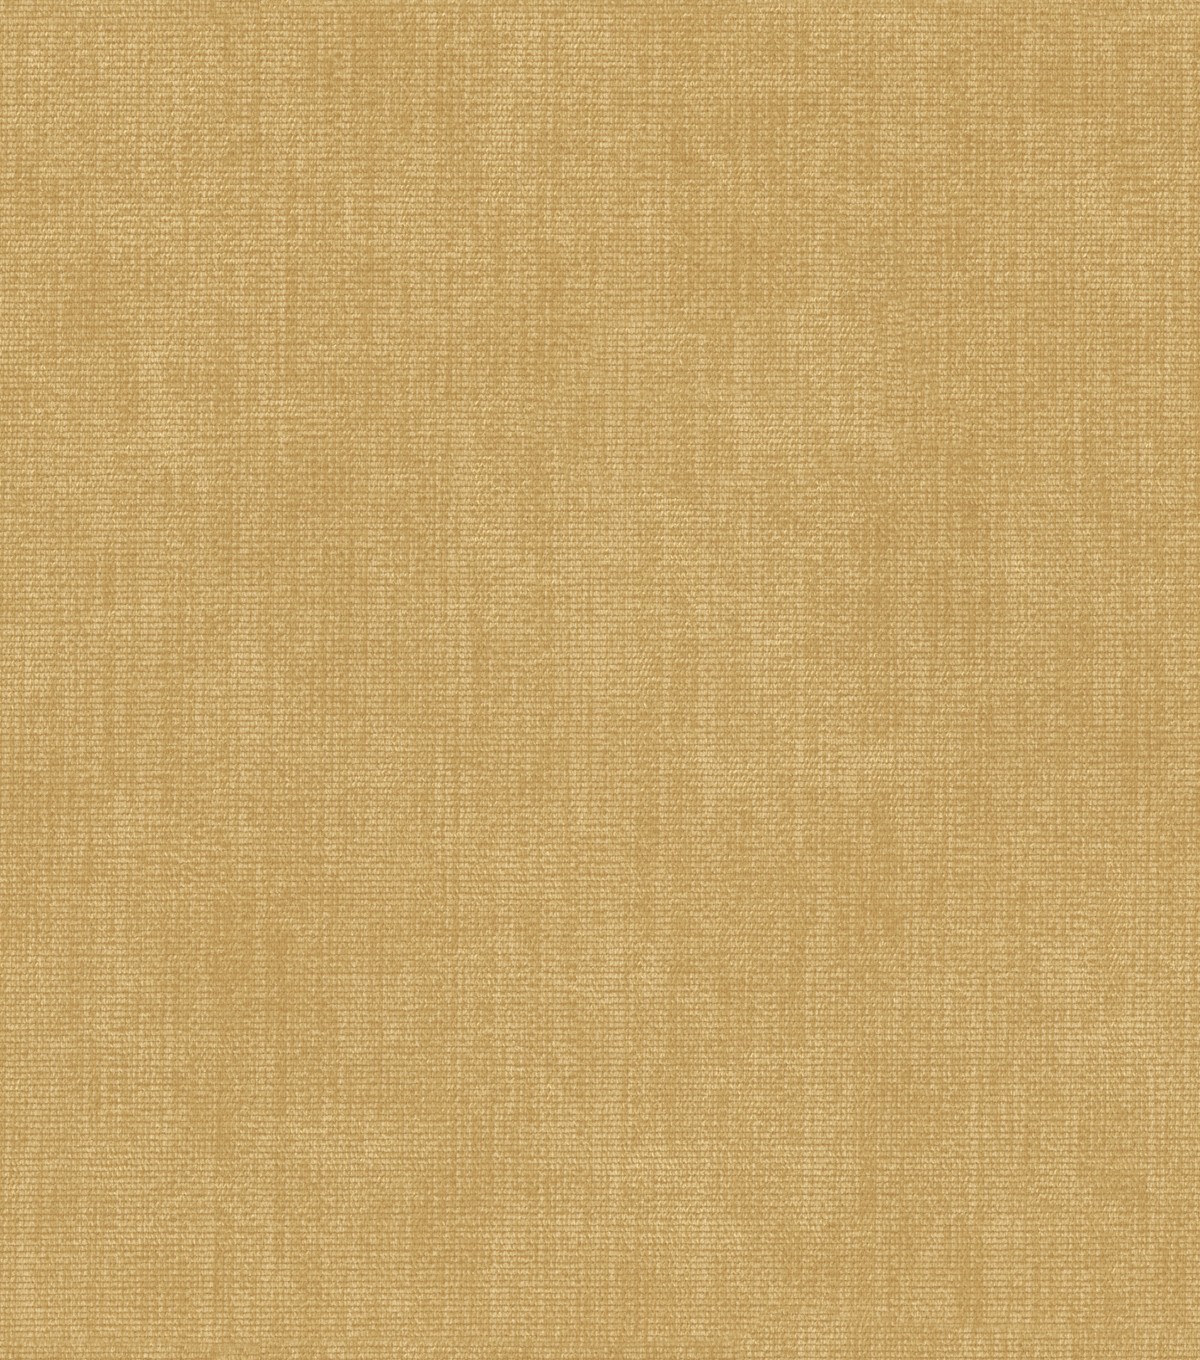 Signature Series Lightweight Decor Fabric 54\u0022-Vitalize Linen